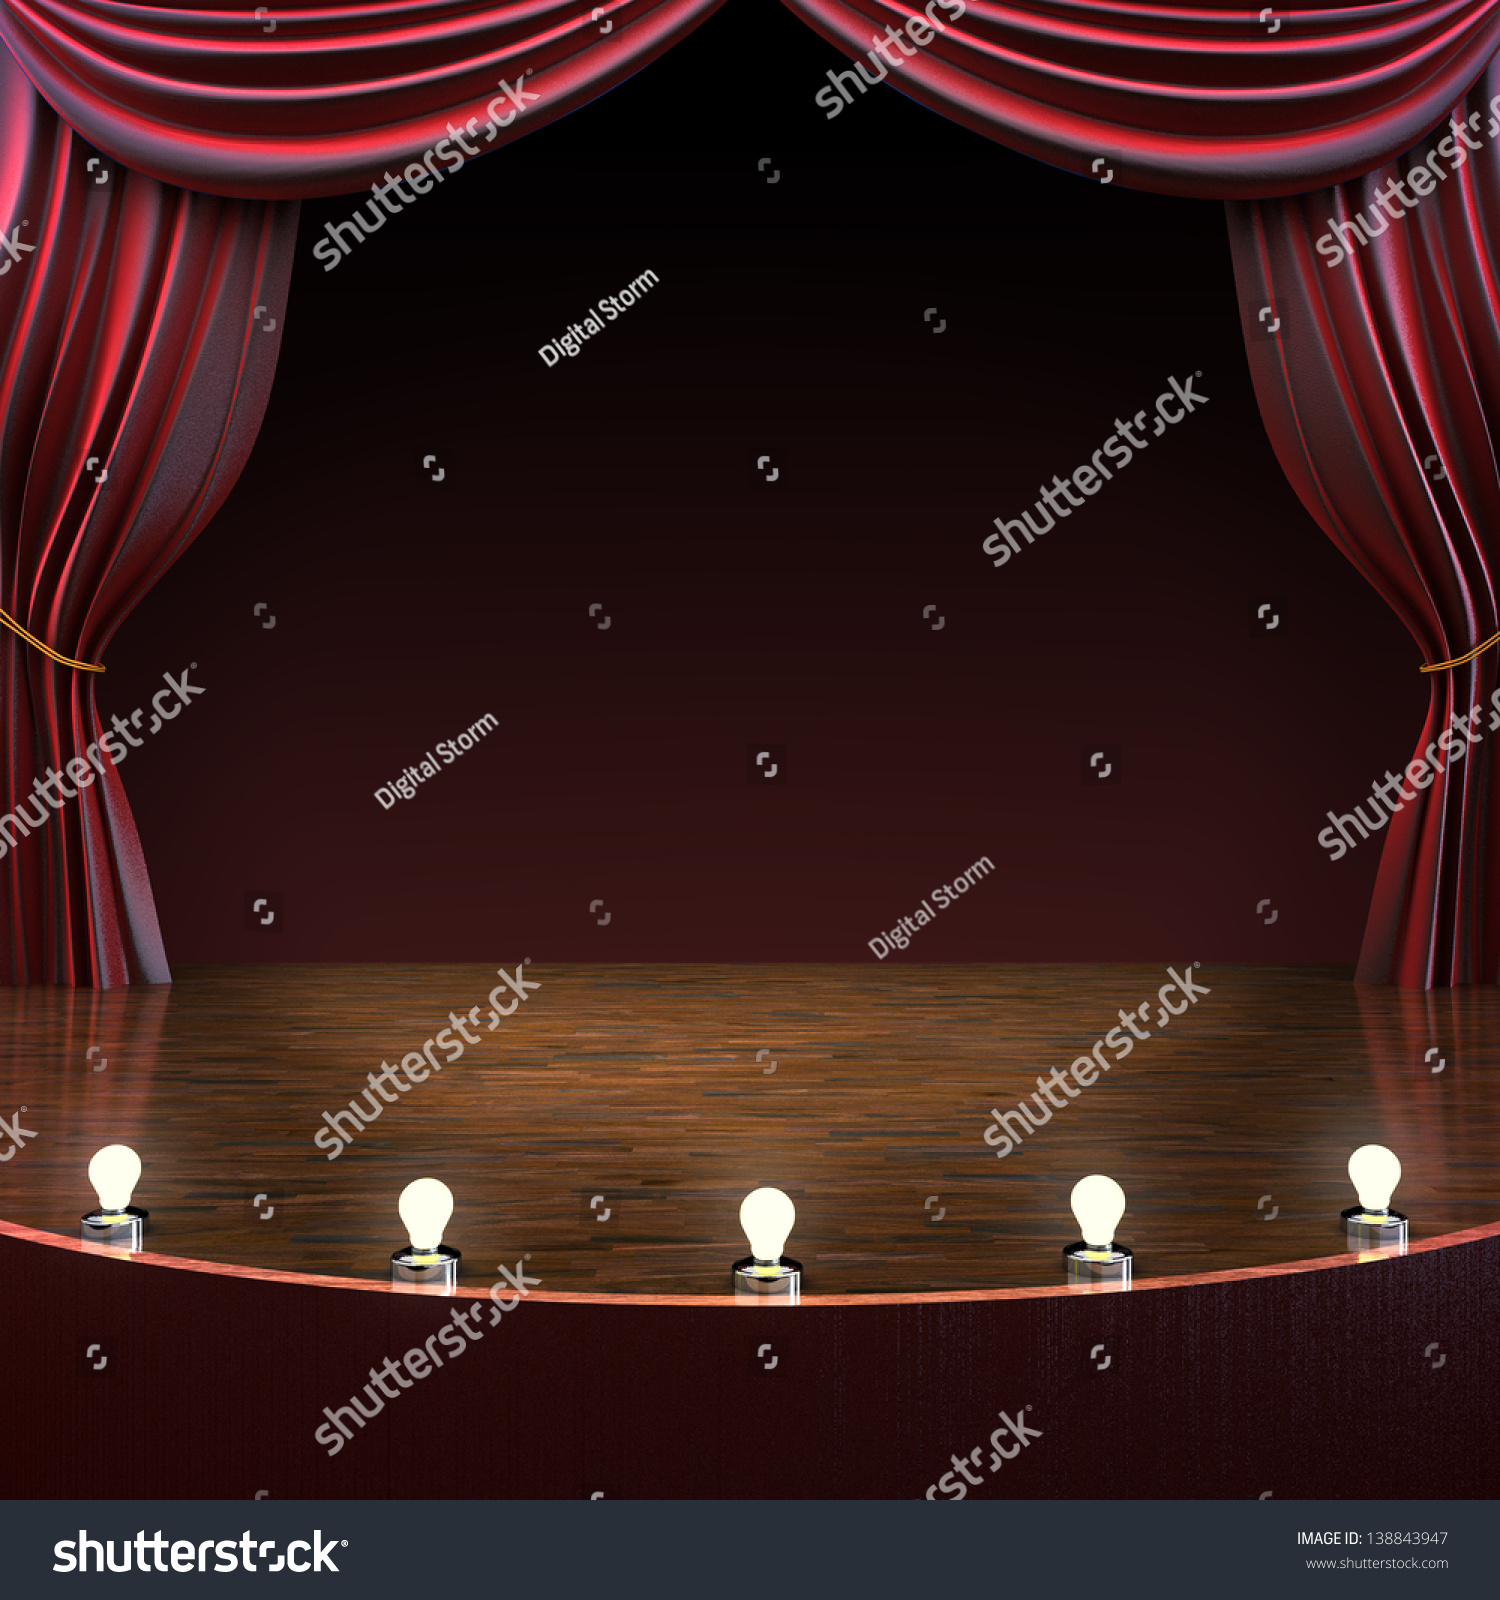 Theater curtains download free vector art stock graphics amp images -  Vectors Illustrations Footage Music Lighted Stage Background Music Comedy Or Performing Arts Concept With Room For Text Or